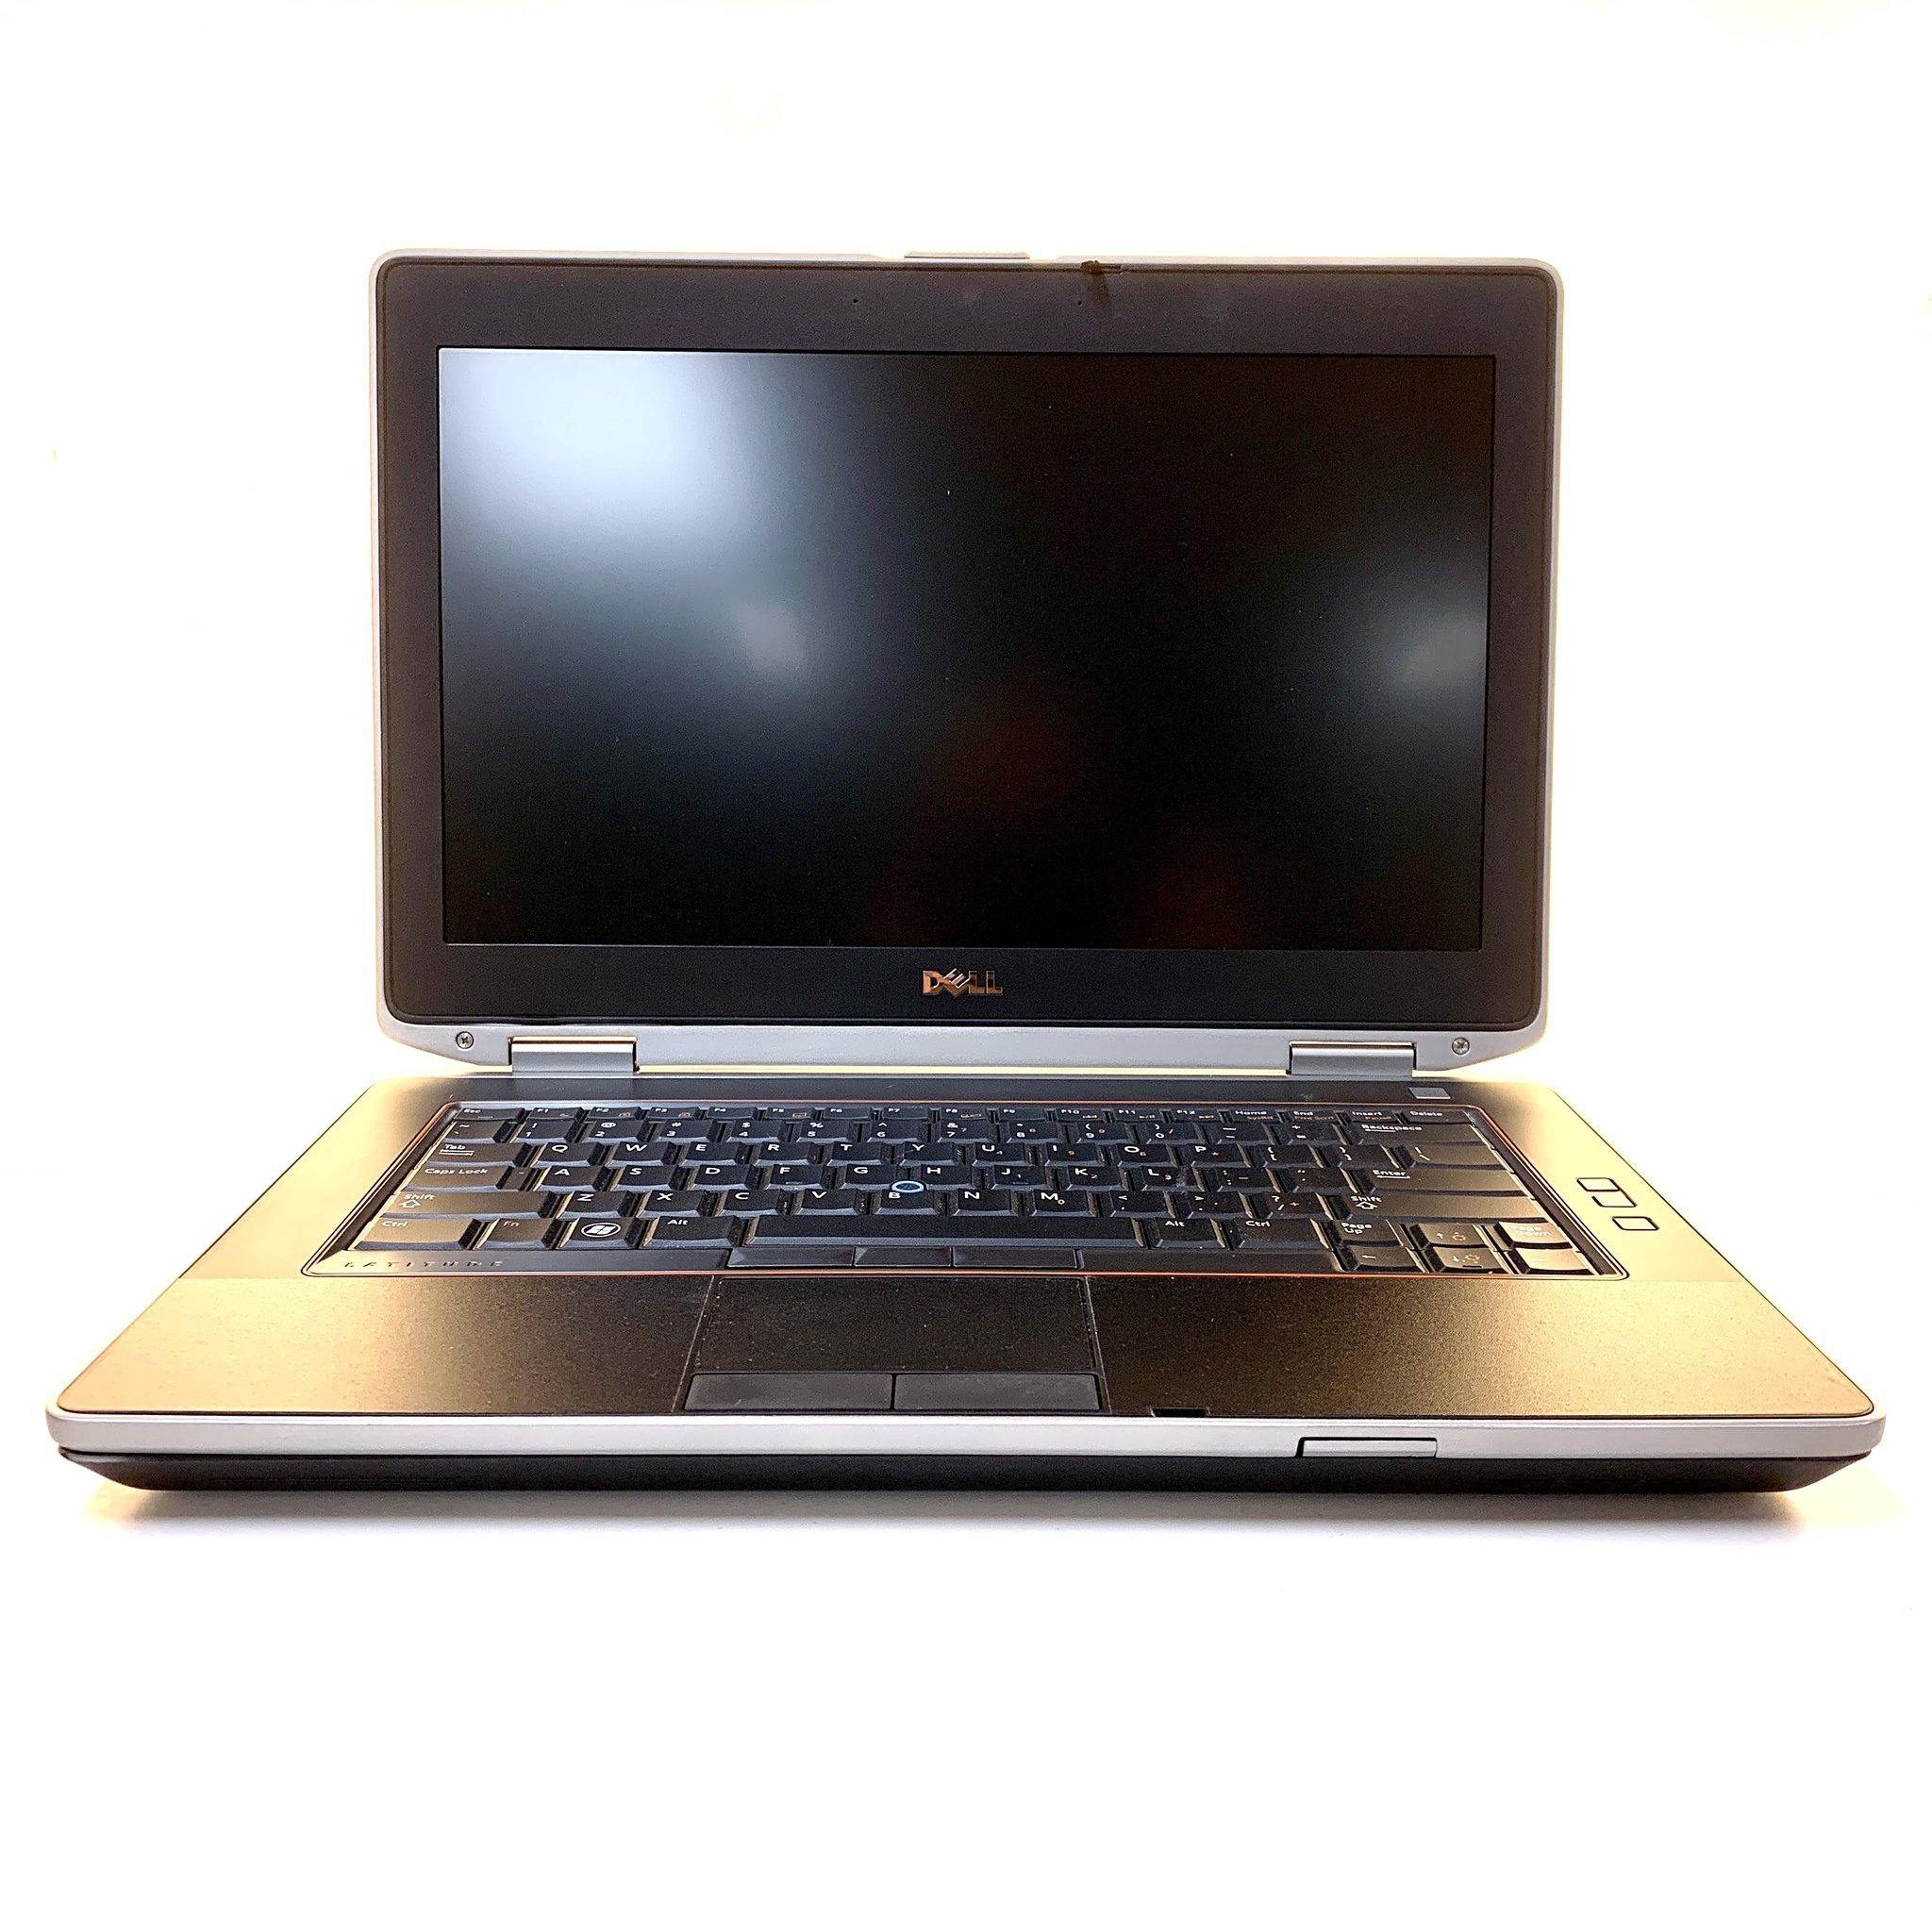 Dell Latitude E6420- Intel Core i5 2520m @2.5GHz-4GB- 320GB HDD